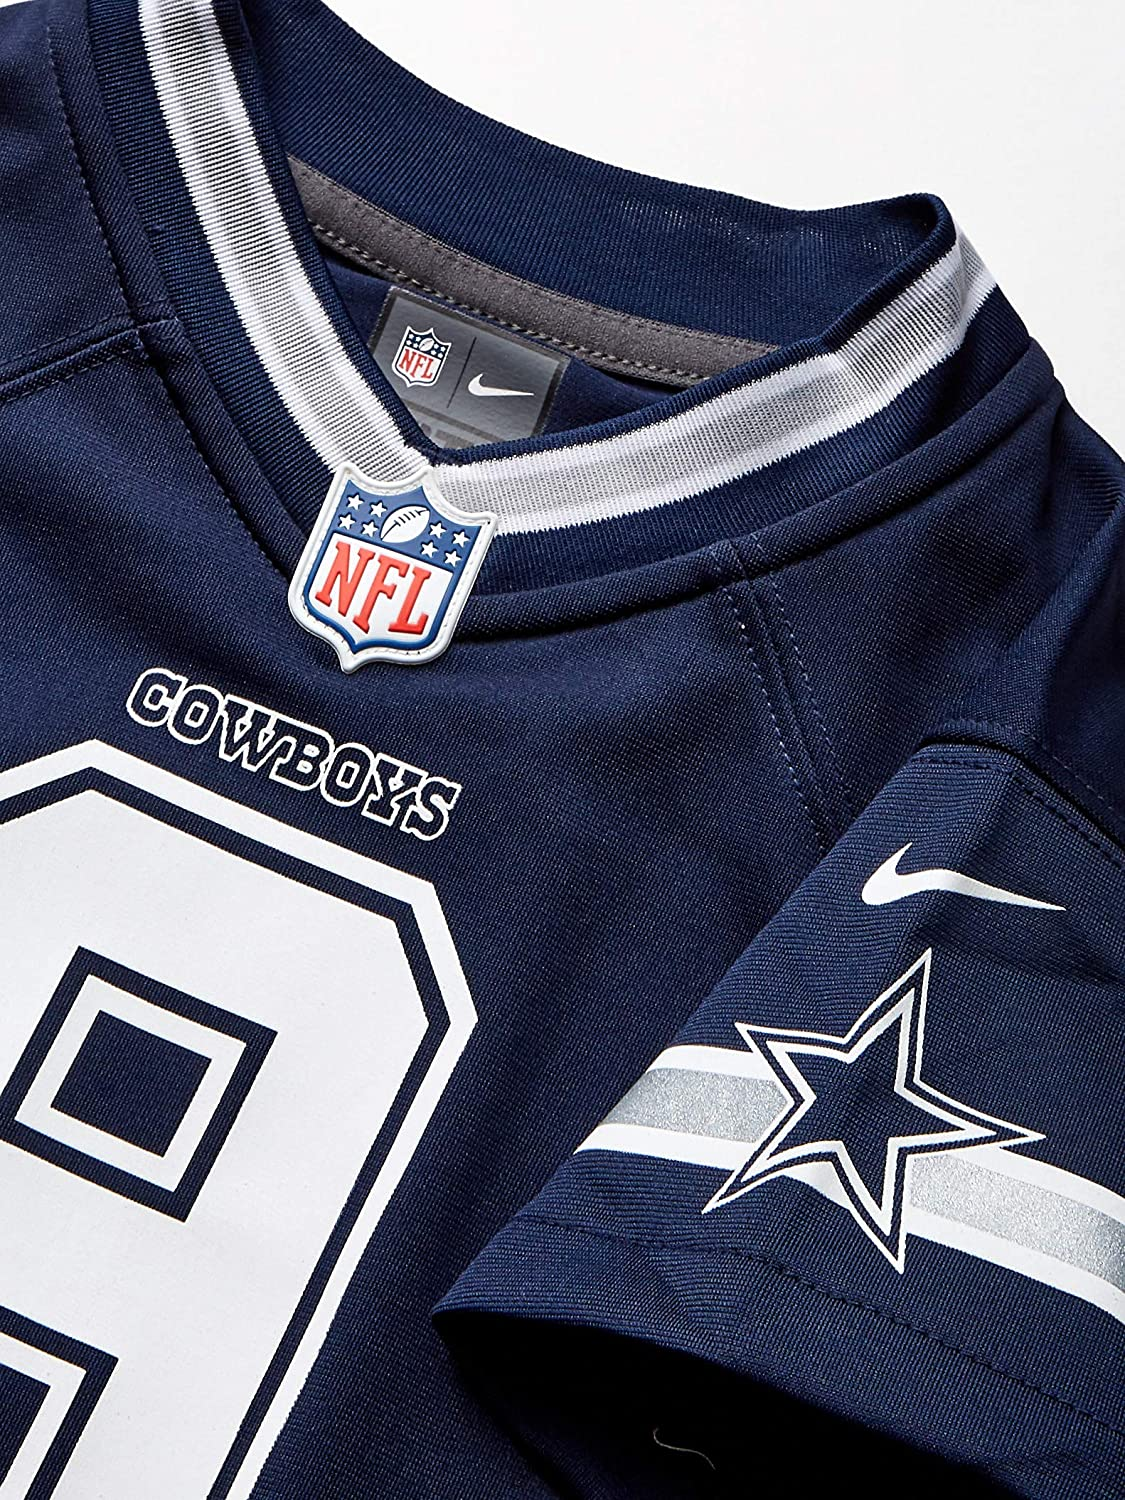 Dallas Cowboys Nike Infant Tony ROMO #9 Game Jersey Nike Infant Tony ROMO #9 Game Jersey